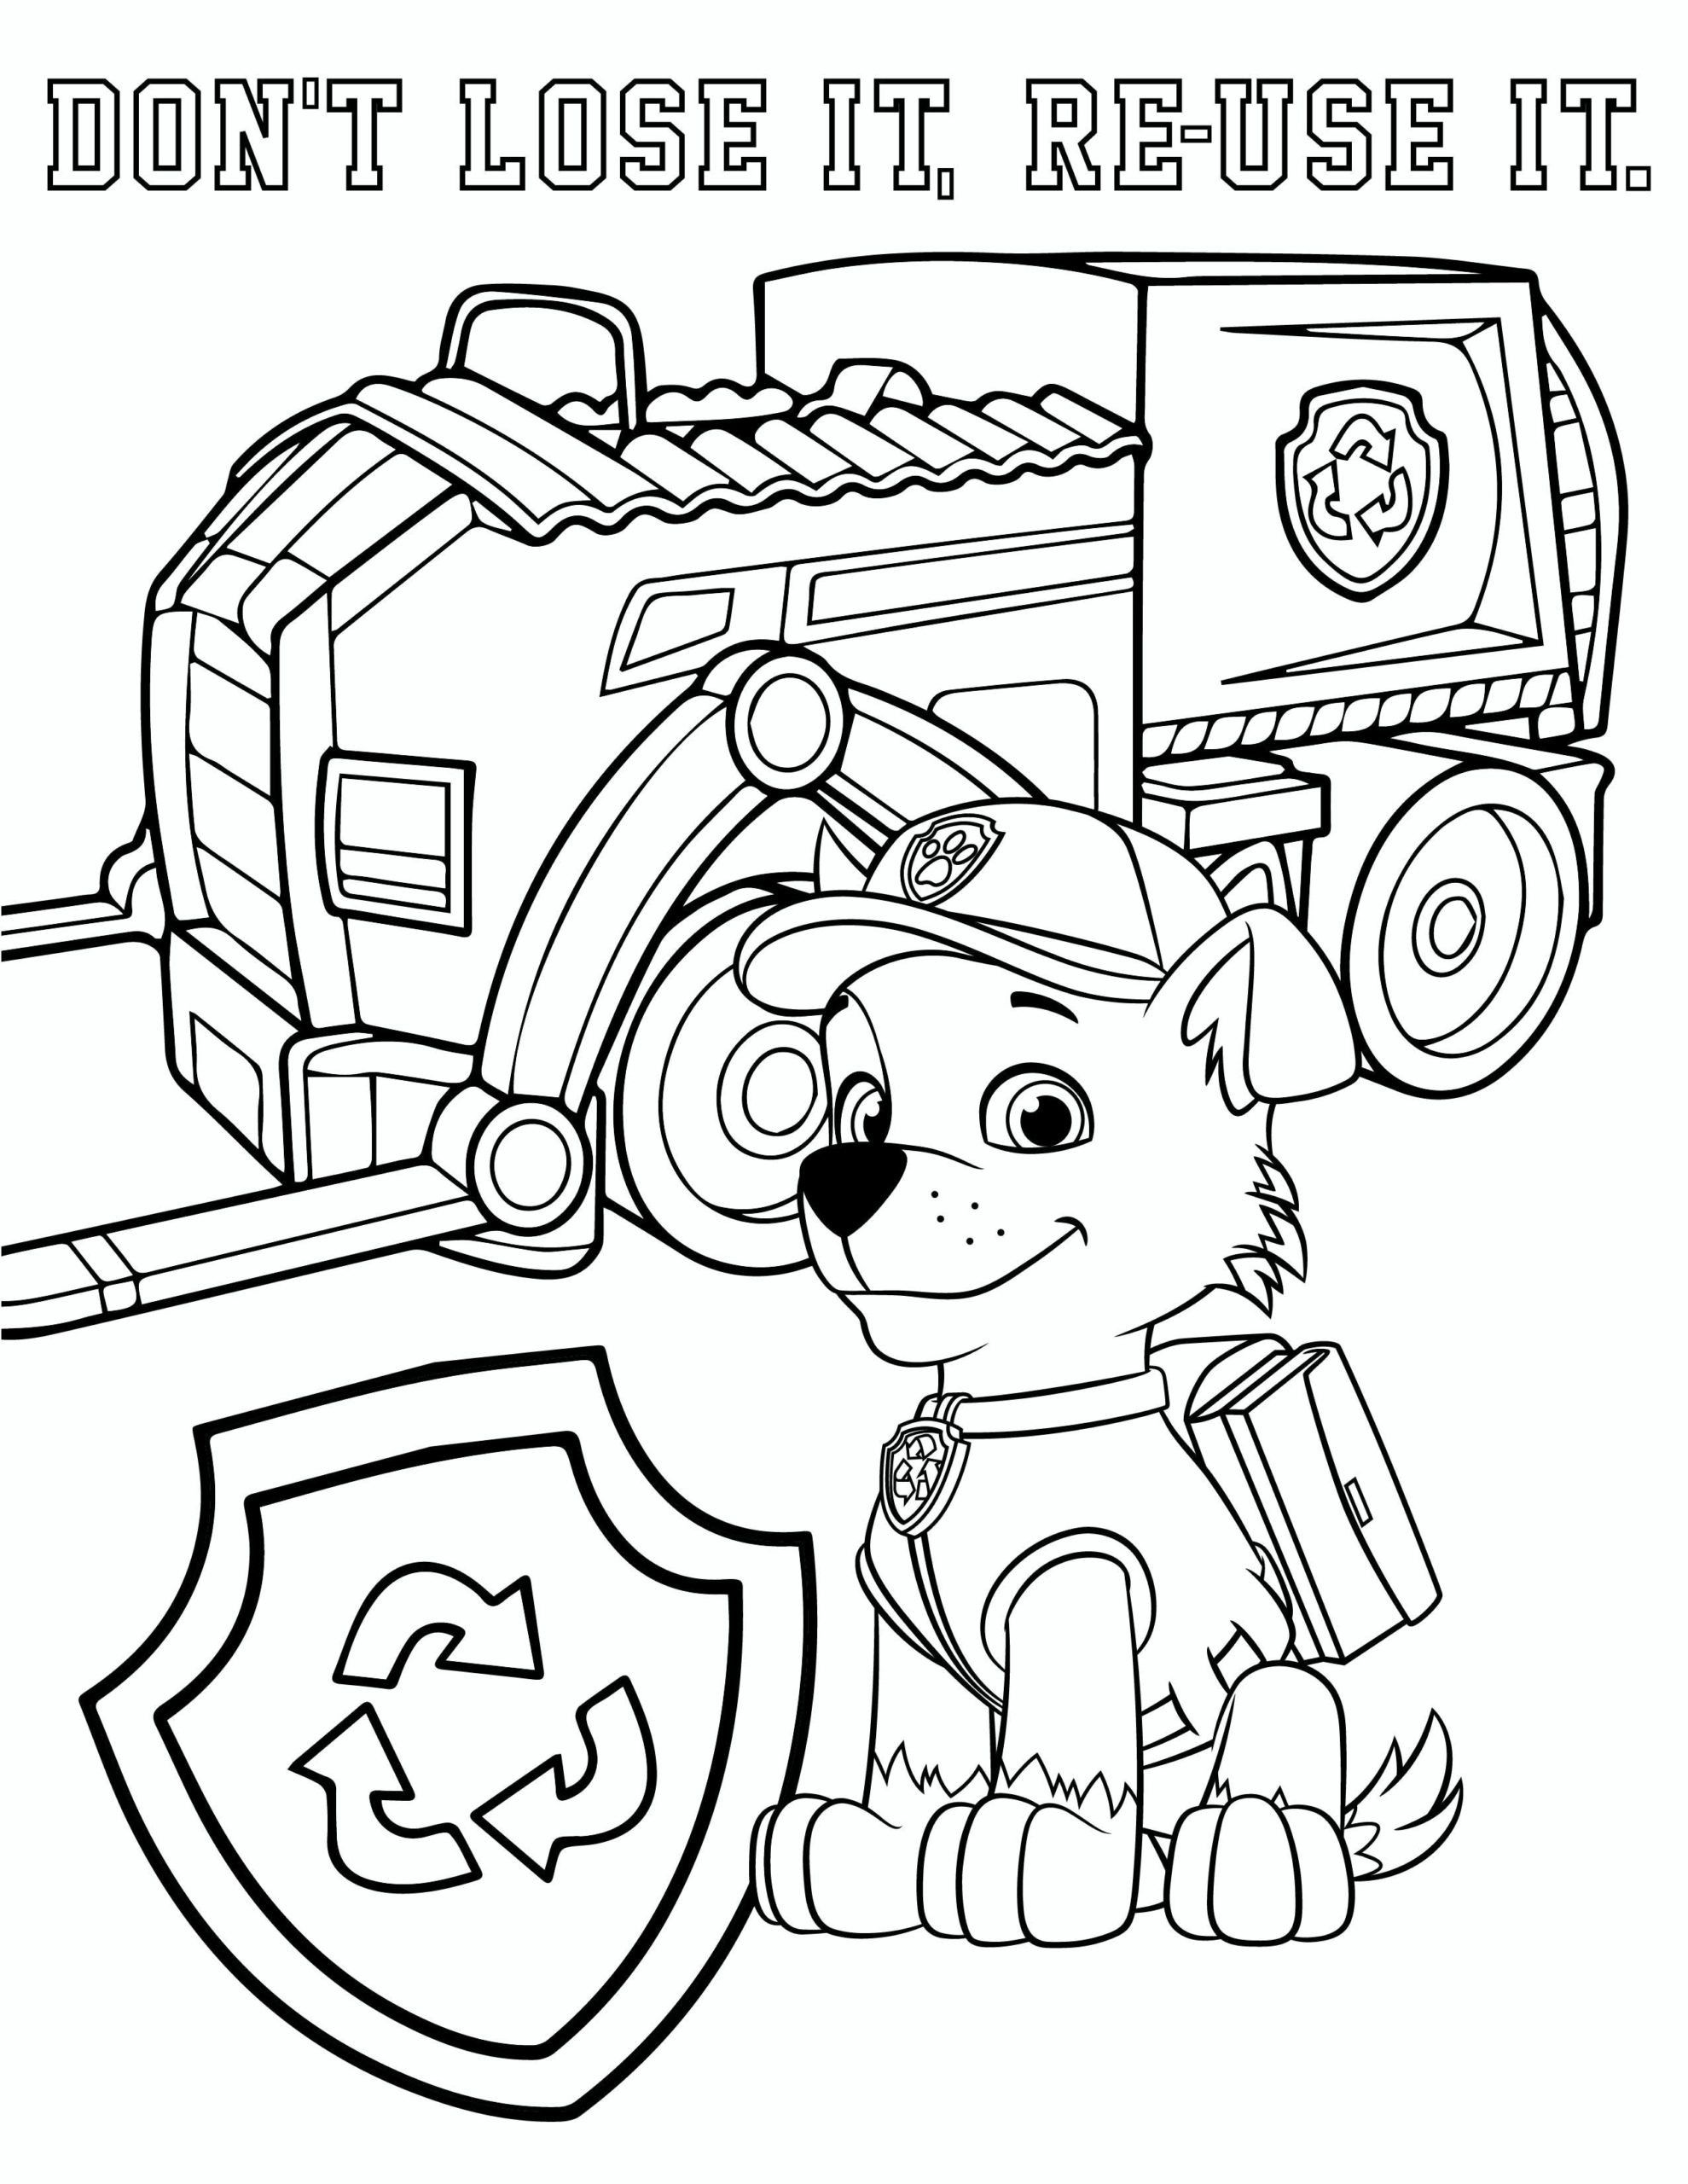 Paw Patrol Coloring Page in 2020 Paw